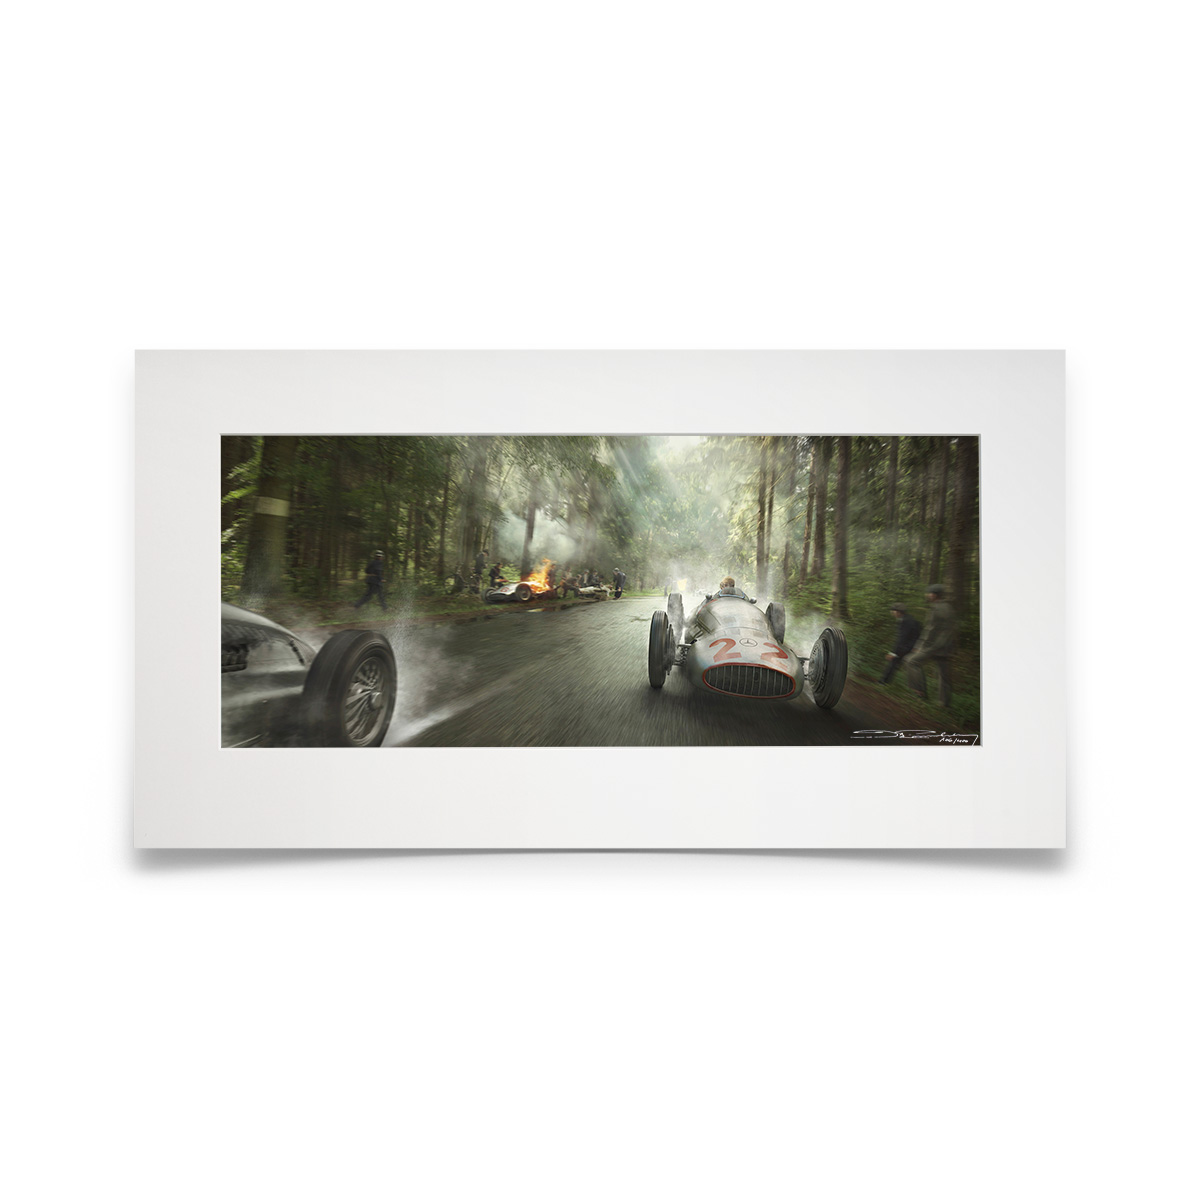 Product image for A Dampened Victory   Hermann Lang - Mercedes - 1939   Automobilist   Fine Art